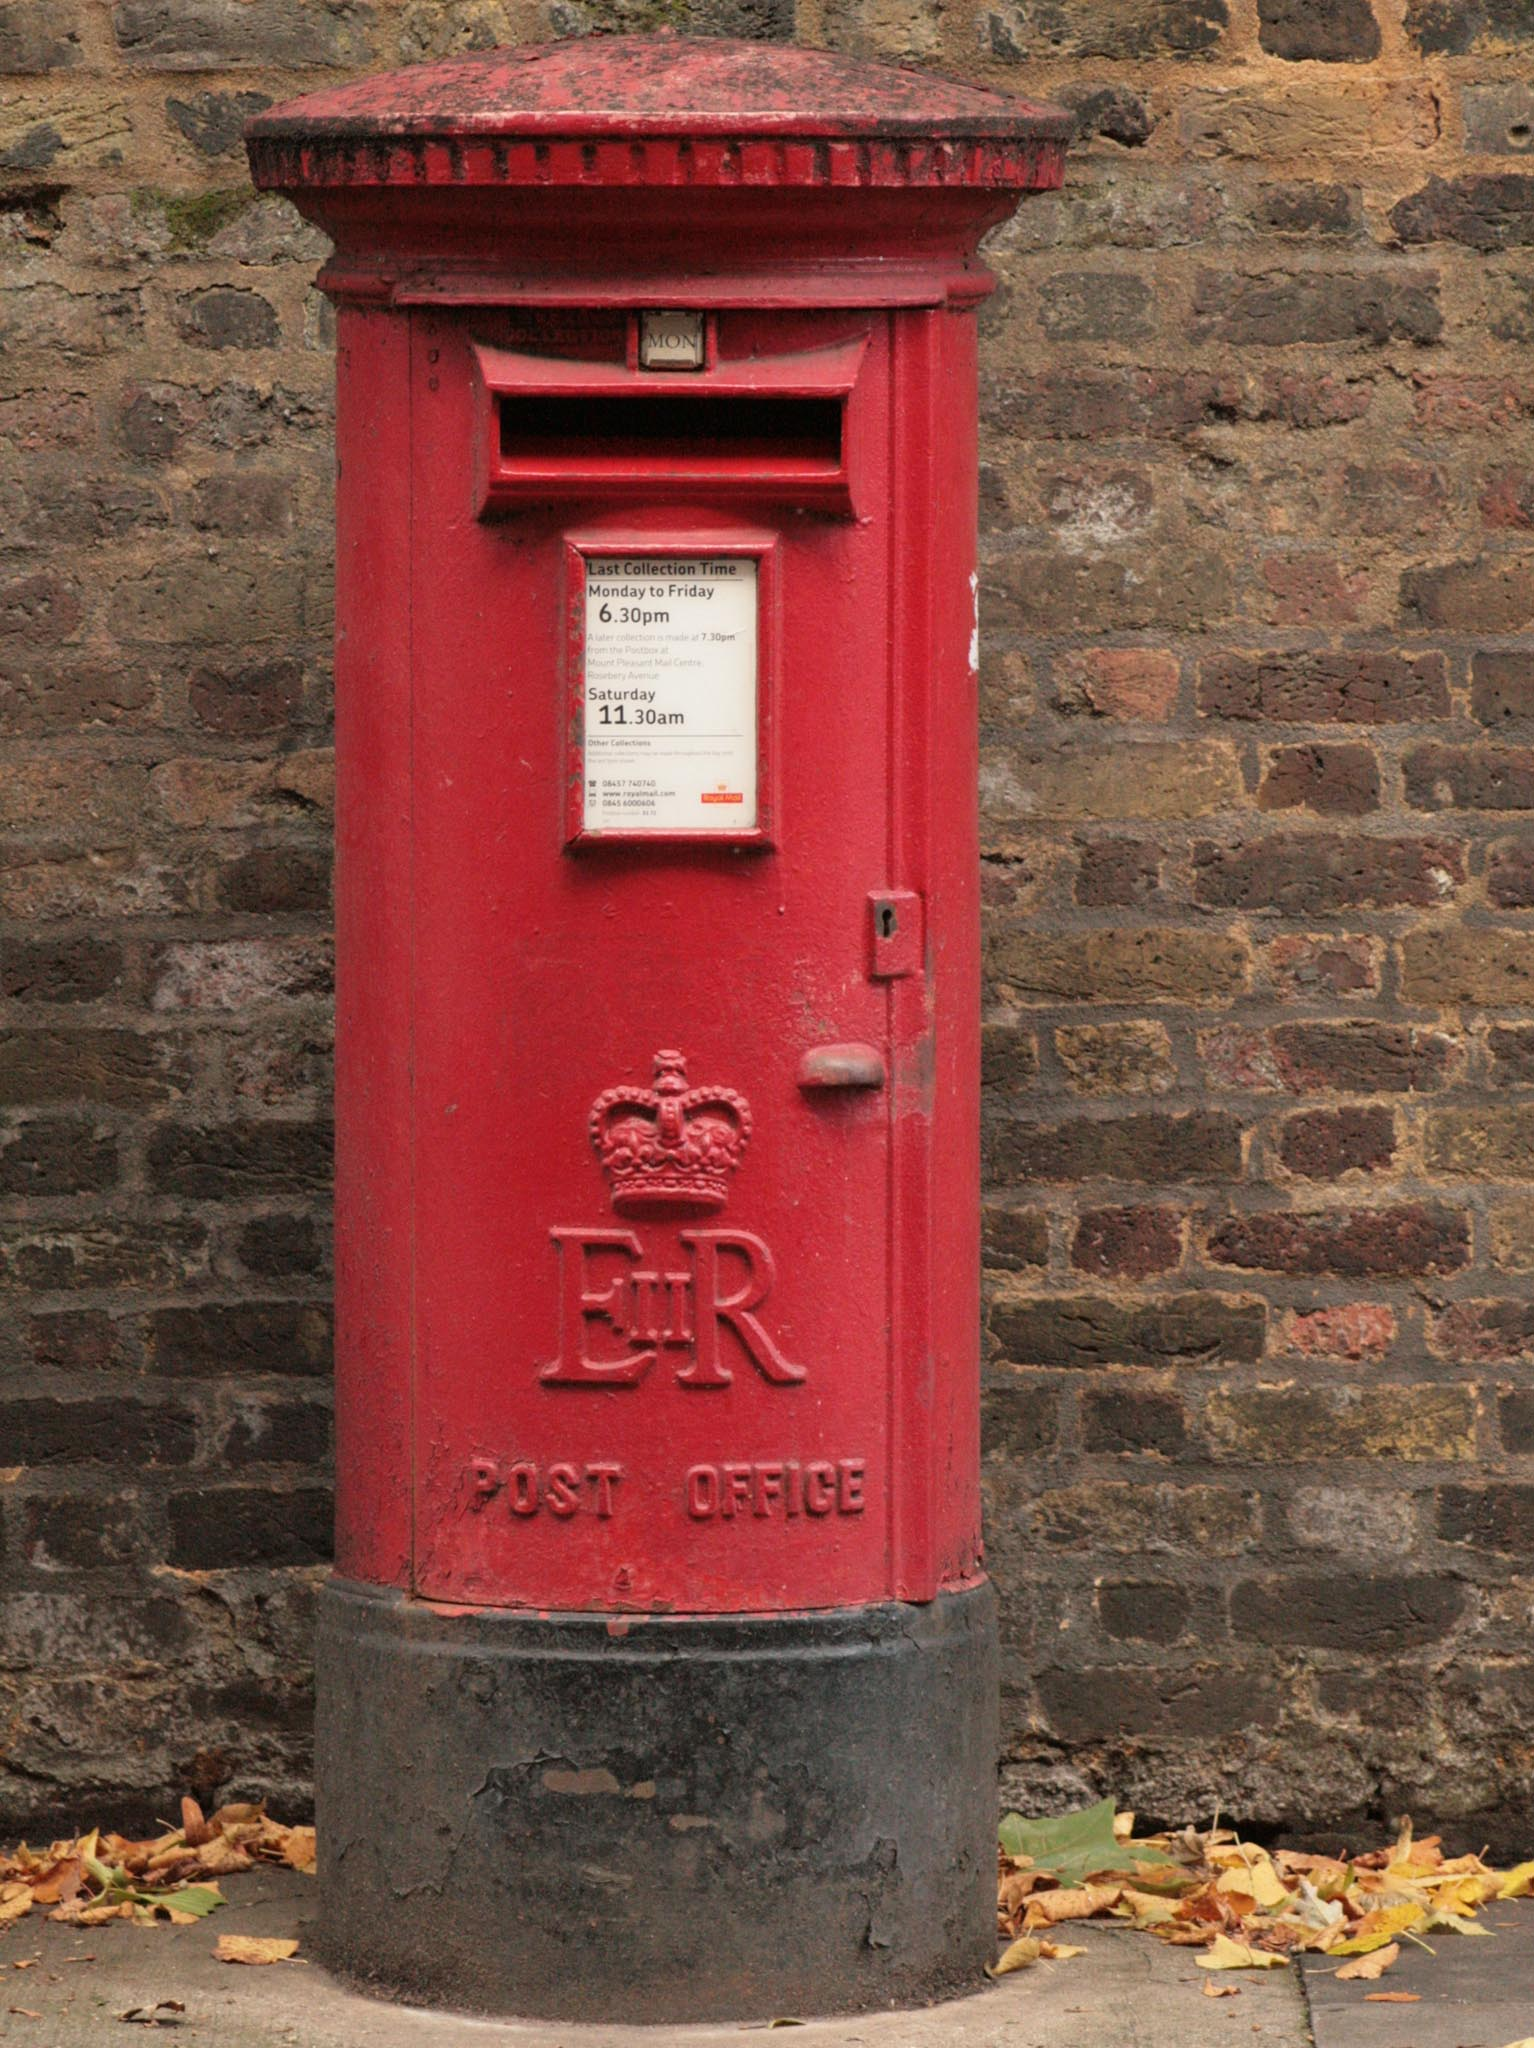 E2R pillar box, 1970s, London.